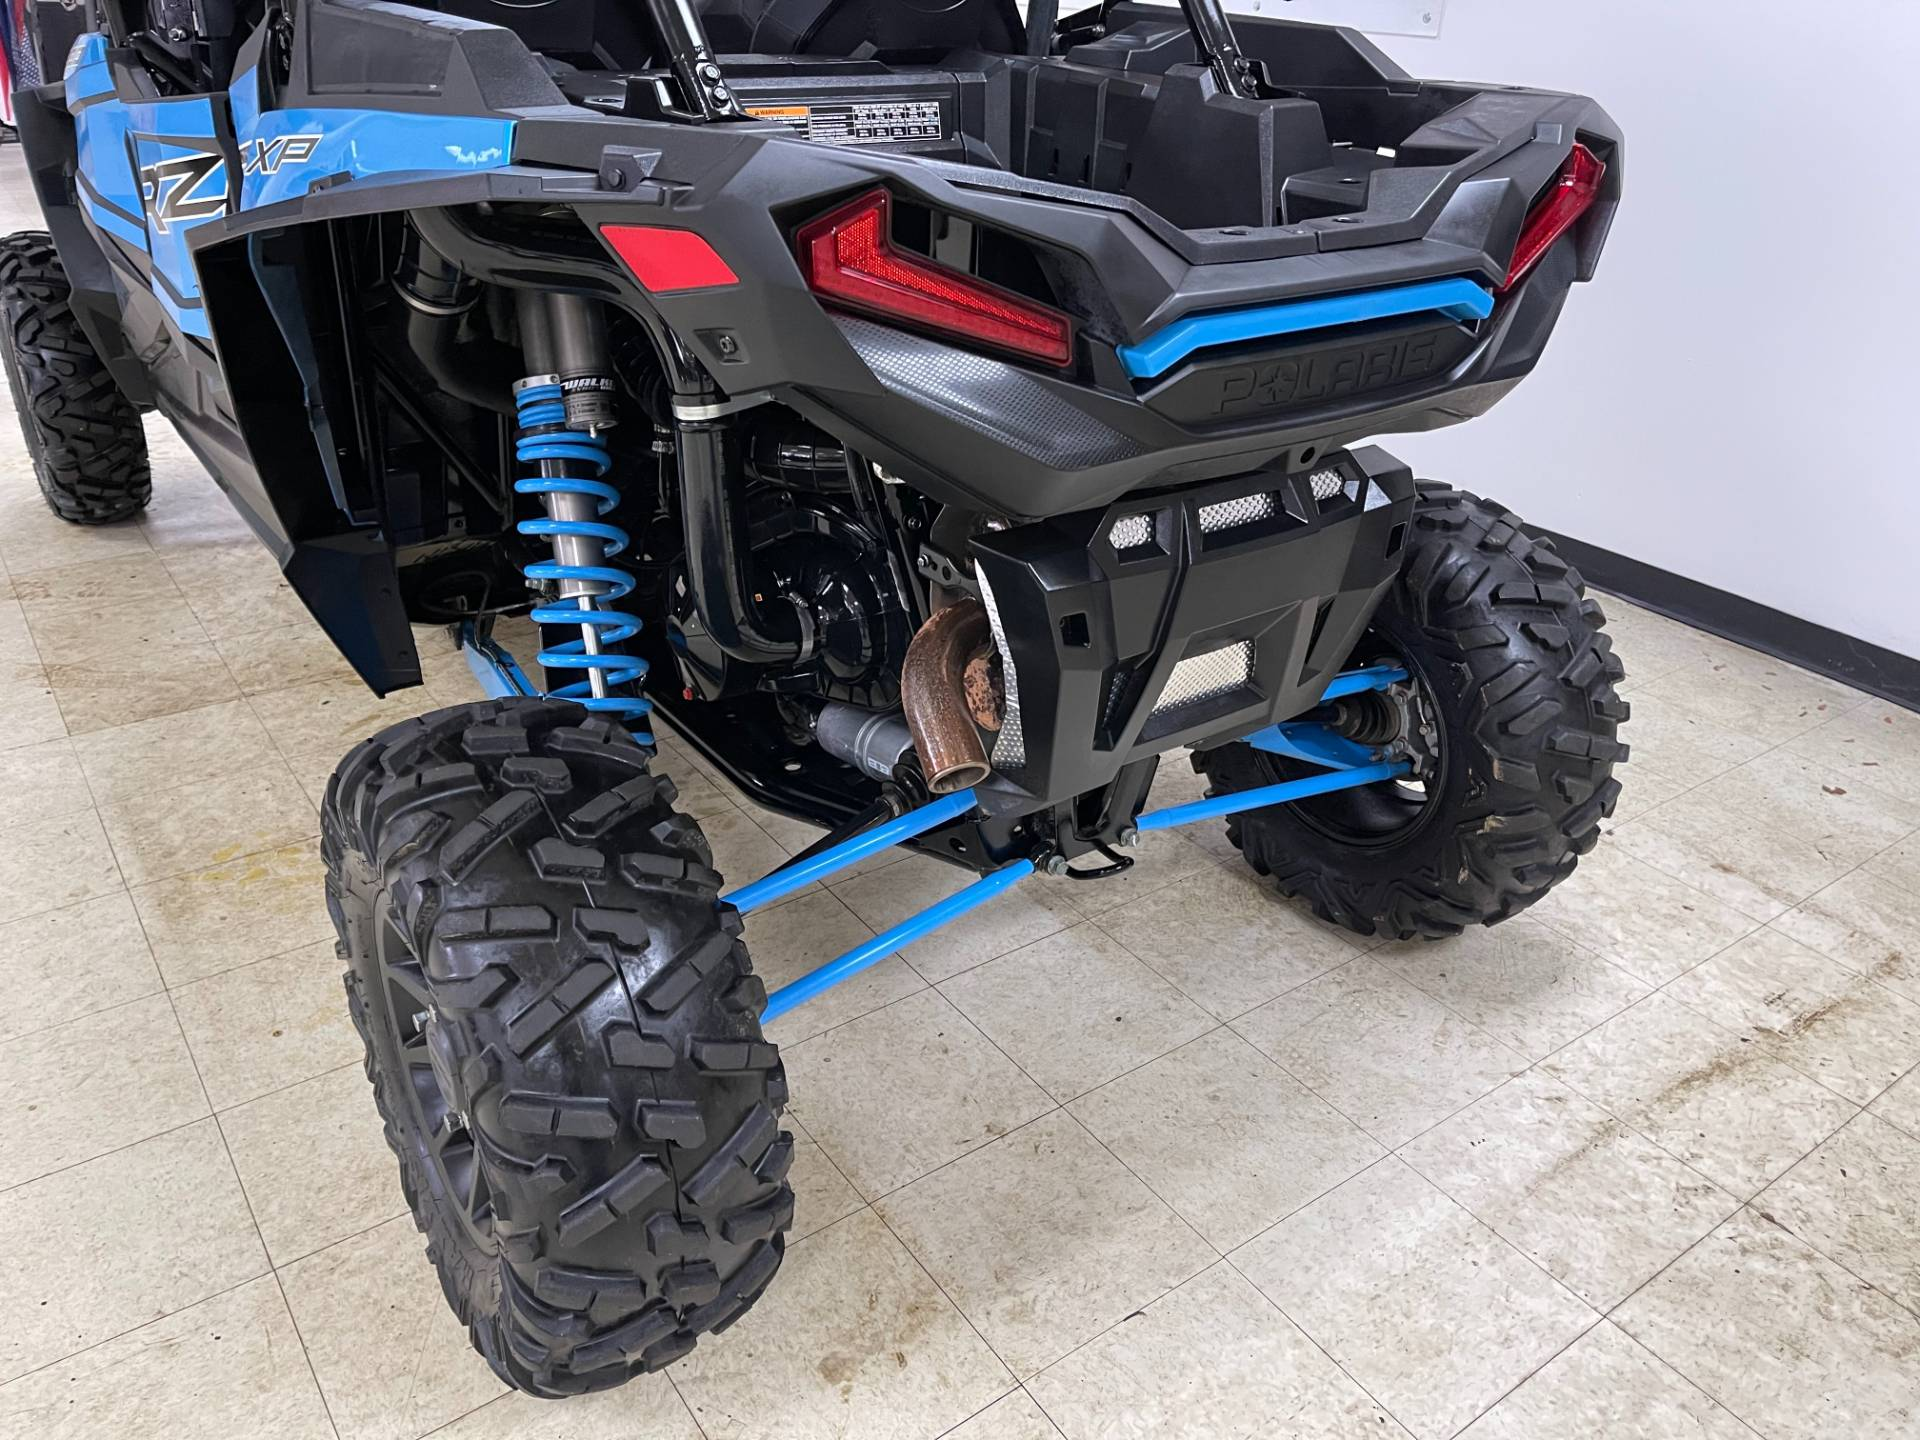 2020 Polaris RZR XP 4 1000 in Herkimer, New York - Photo 16